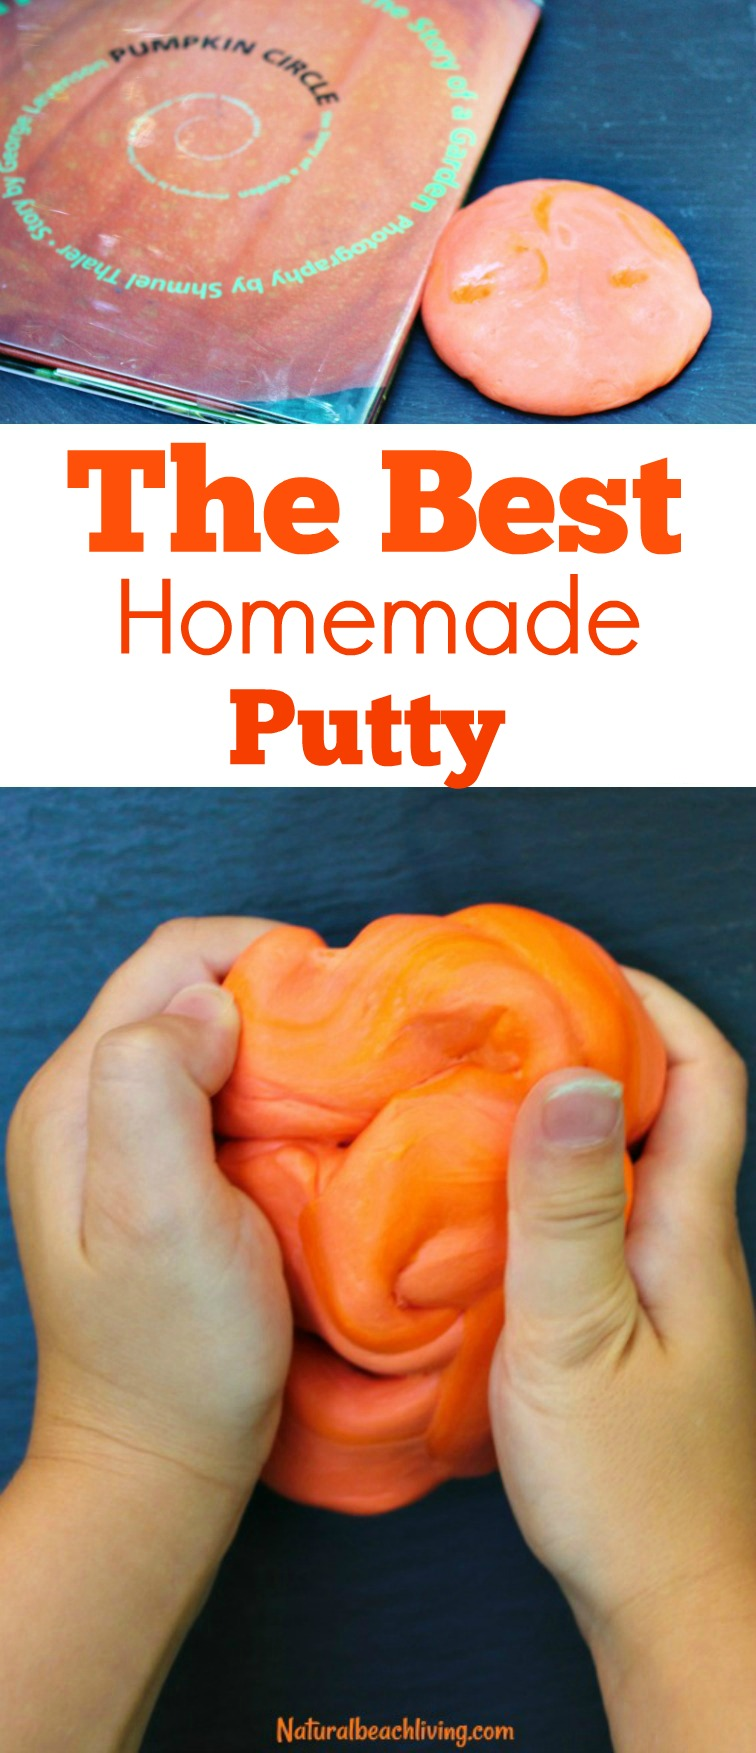 25+ Homemade Putty Recipes, Putty Recipes, How to Make Putty, Silly Putty Recipe, Therapy Putty Recipe, Edible Putty, Putty is a great tool for keeping your children focused and on working fine motor skills. All you need is a few simple ingredients, and you'll have a homemade putty everyone will want to play with.